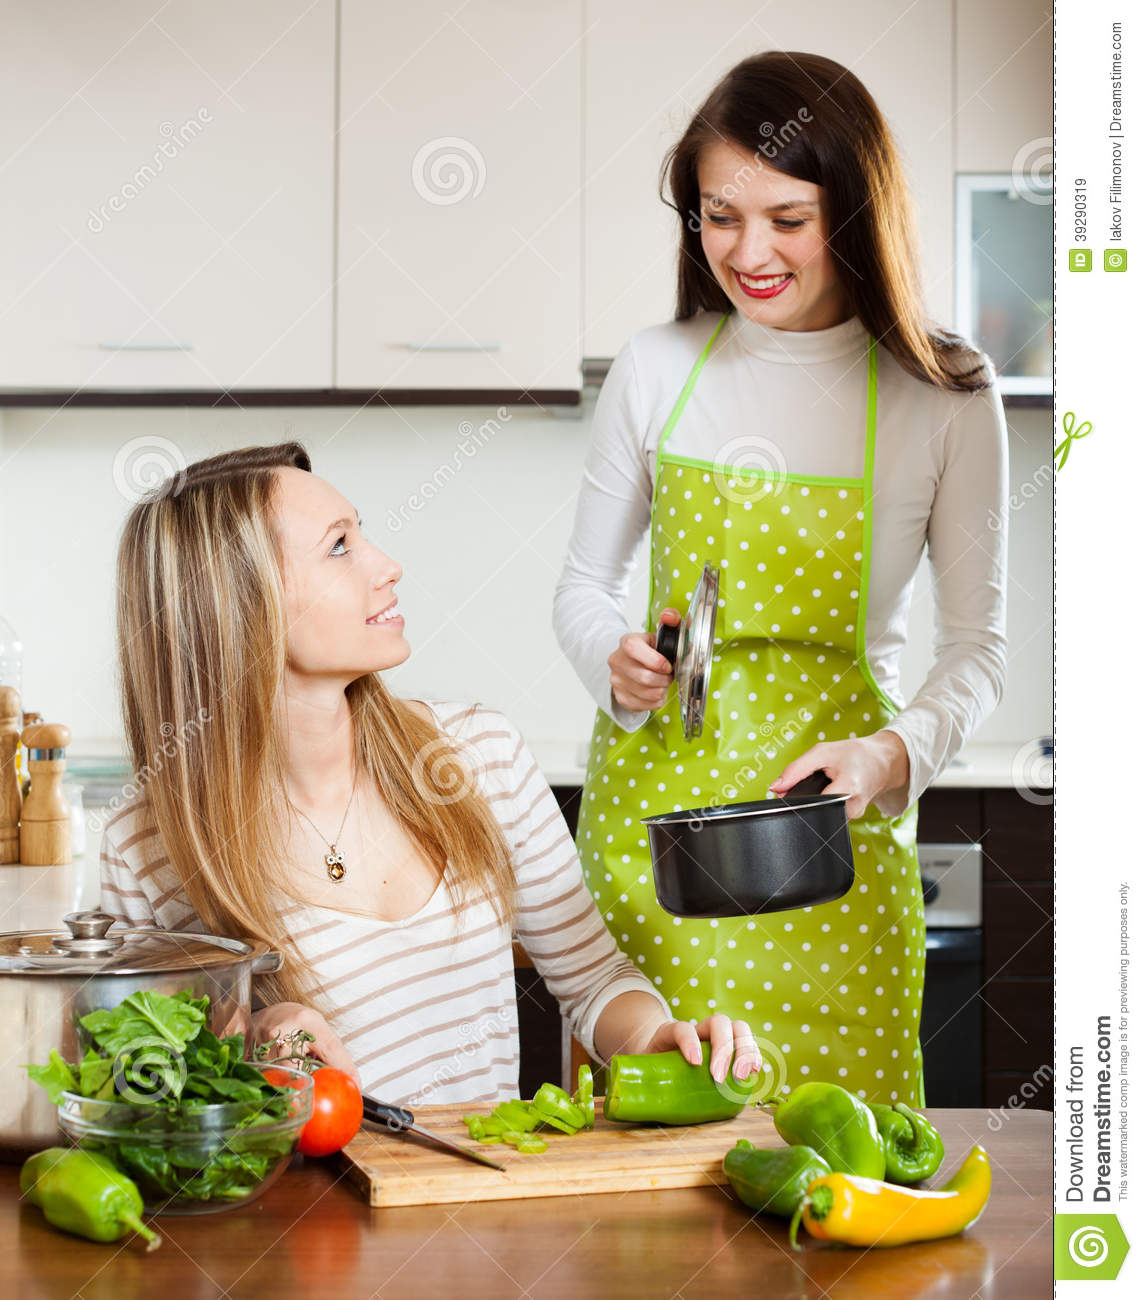 Happy Girls Cooking Together At Domestic Kitchen Stock